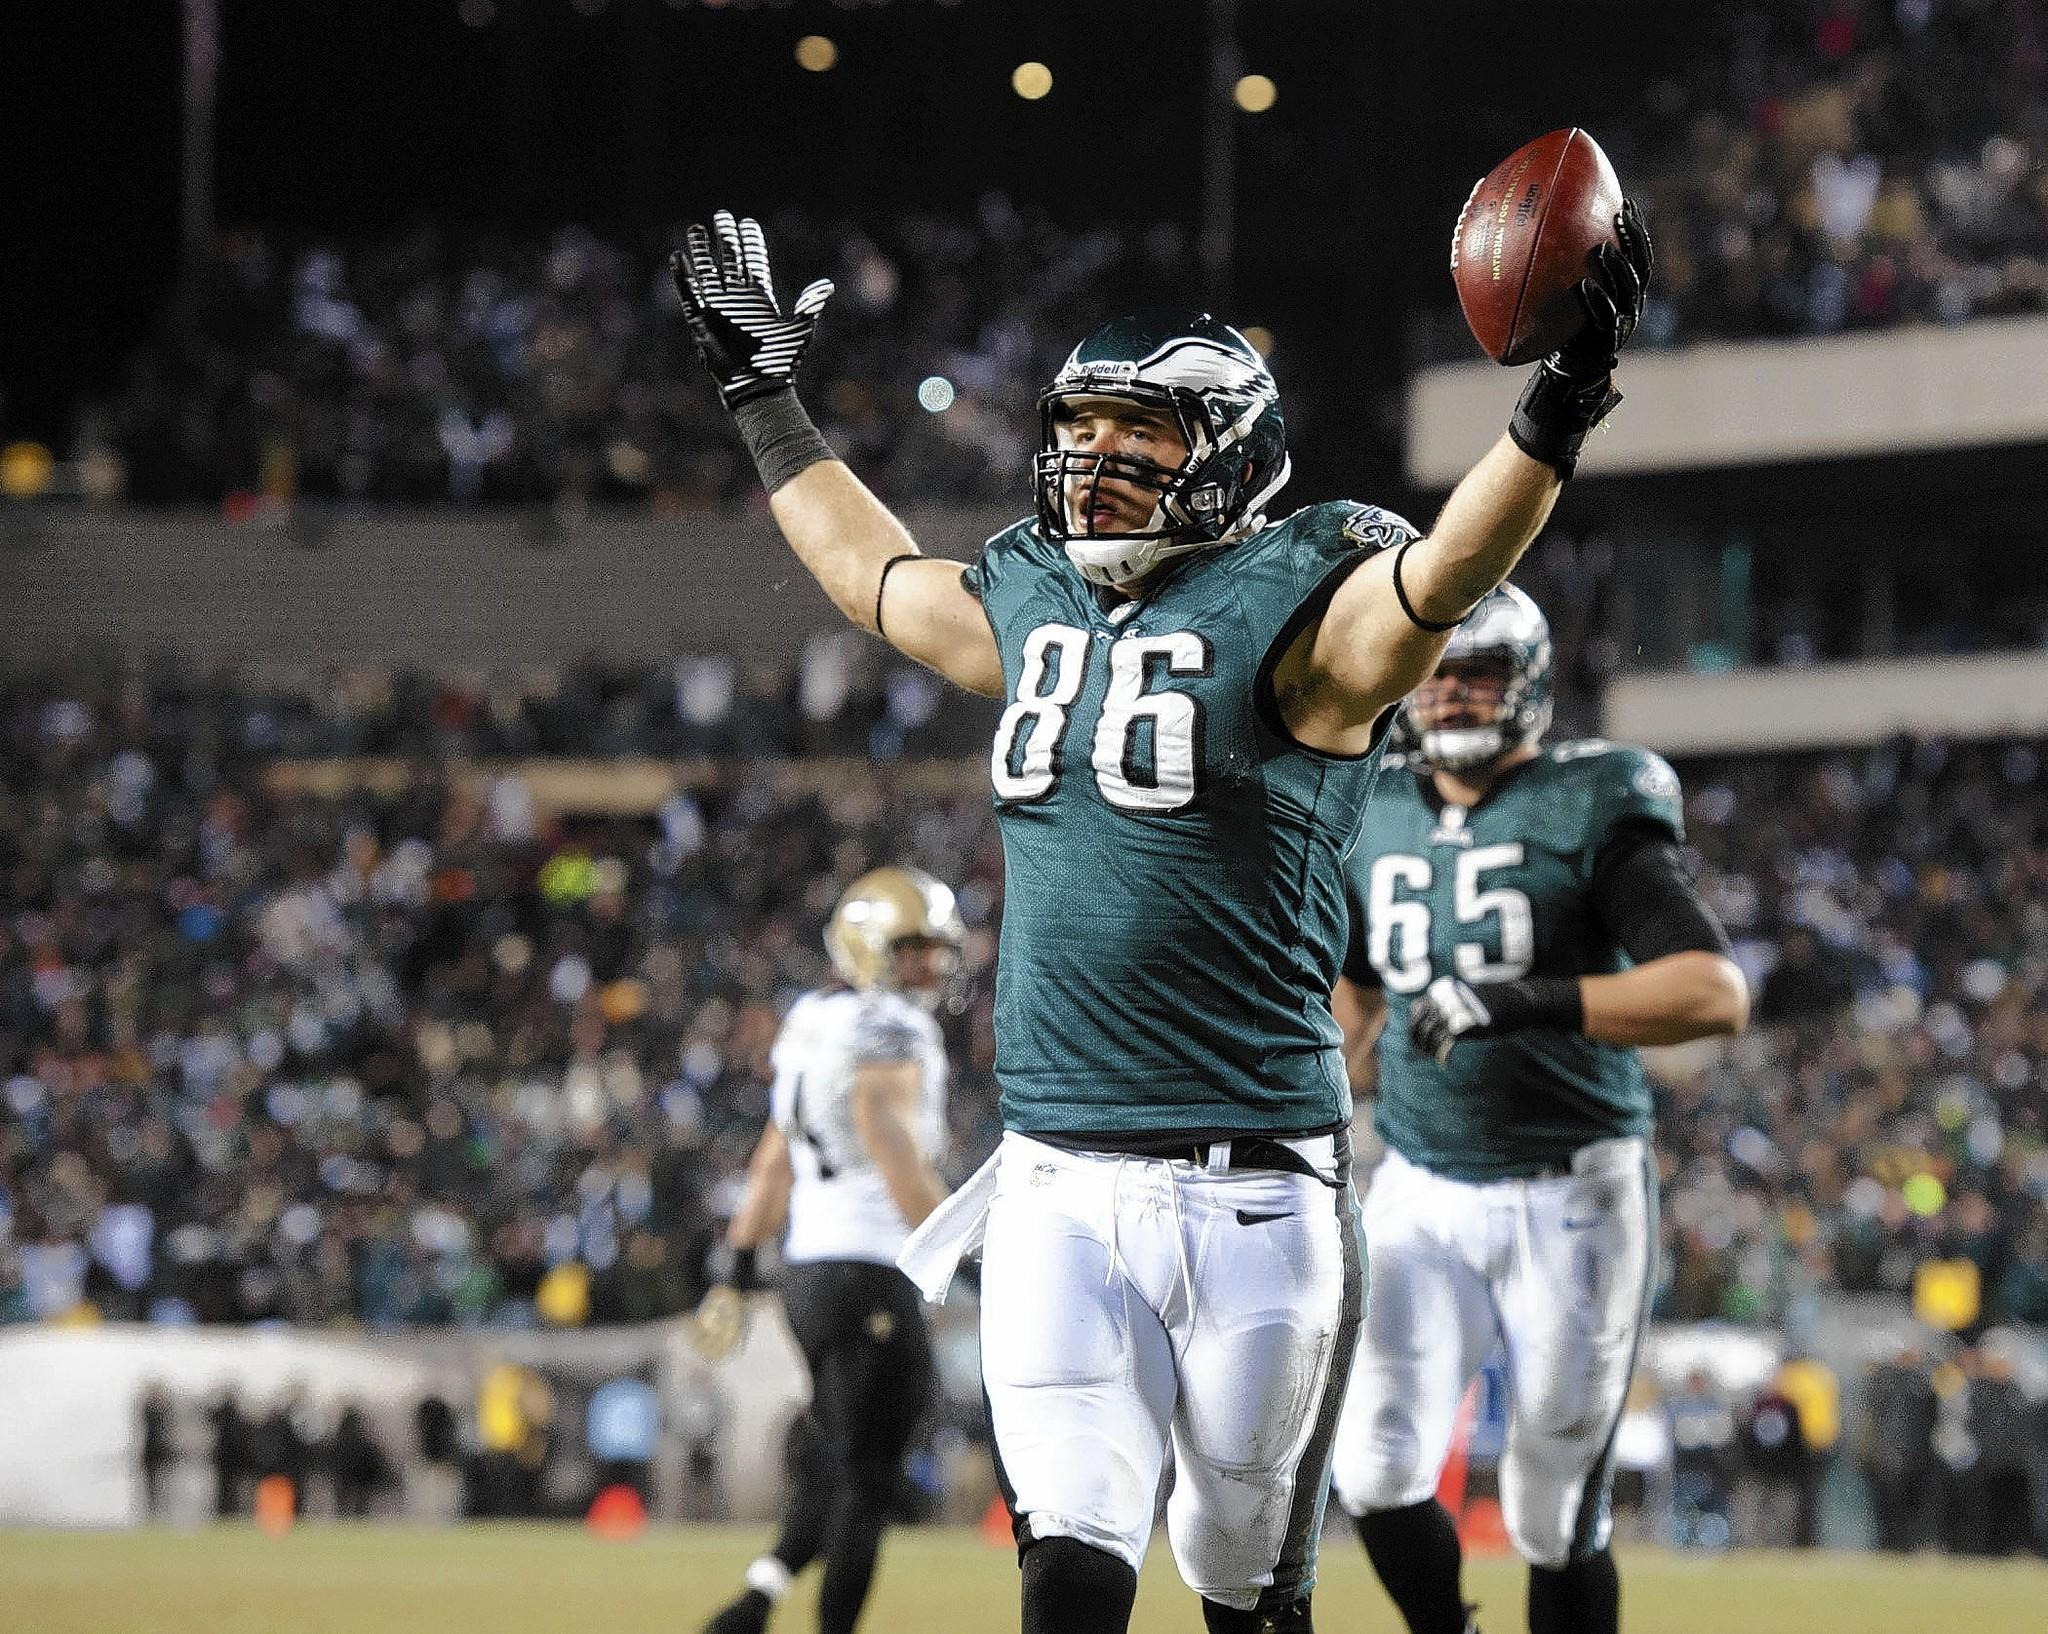 Philadelphia Eagles tight end Zach Ertz (86) celebrates a touchdown against the New Orleans Saints at Lincoln Financial Field in Philadelphia on Saturday, Janurary 4, 2014.